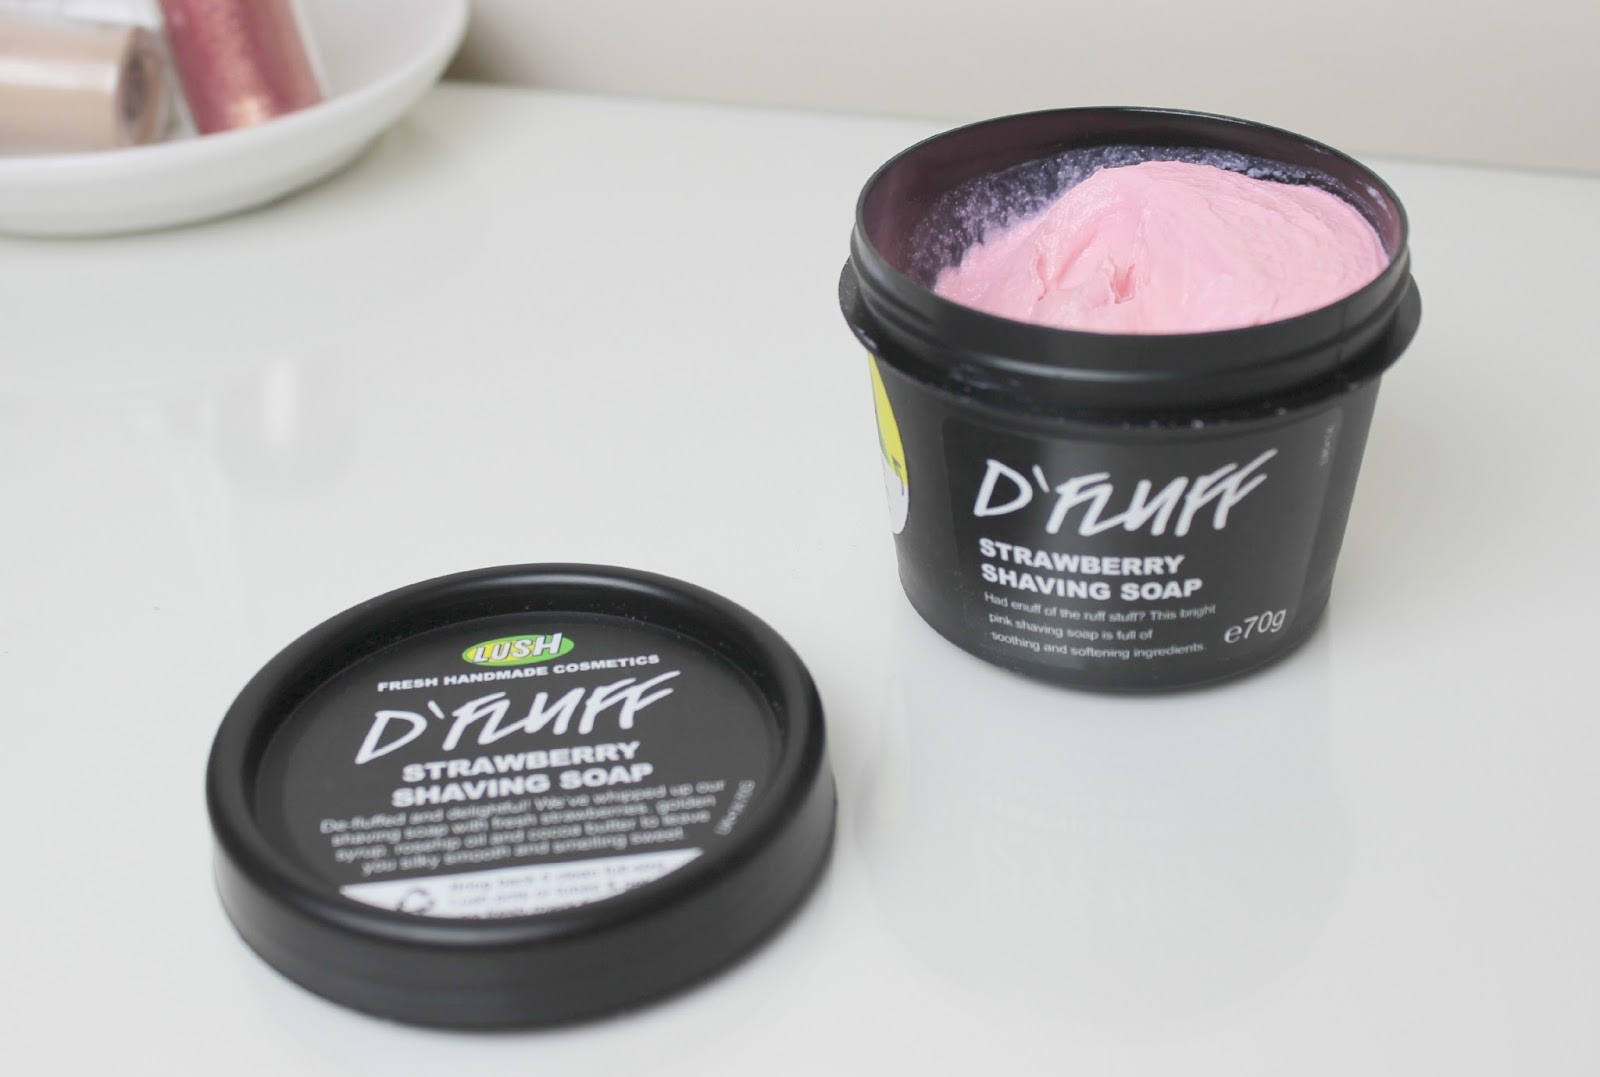 A picture of Lush D'Fluff Strawberry Shaving Soap